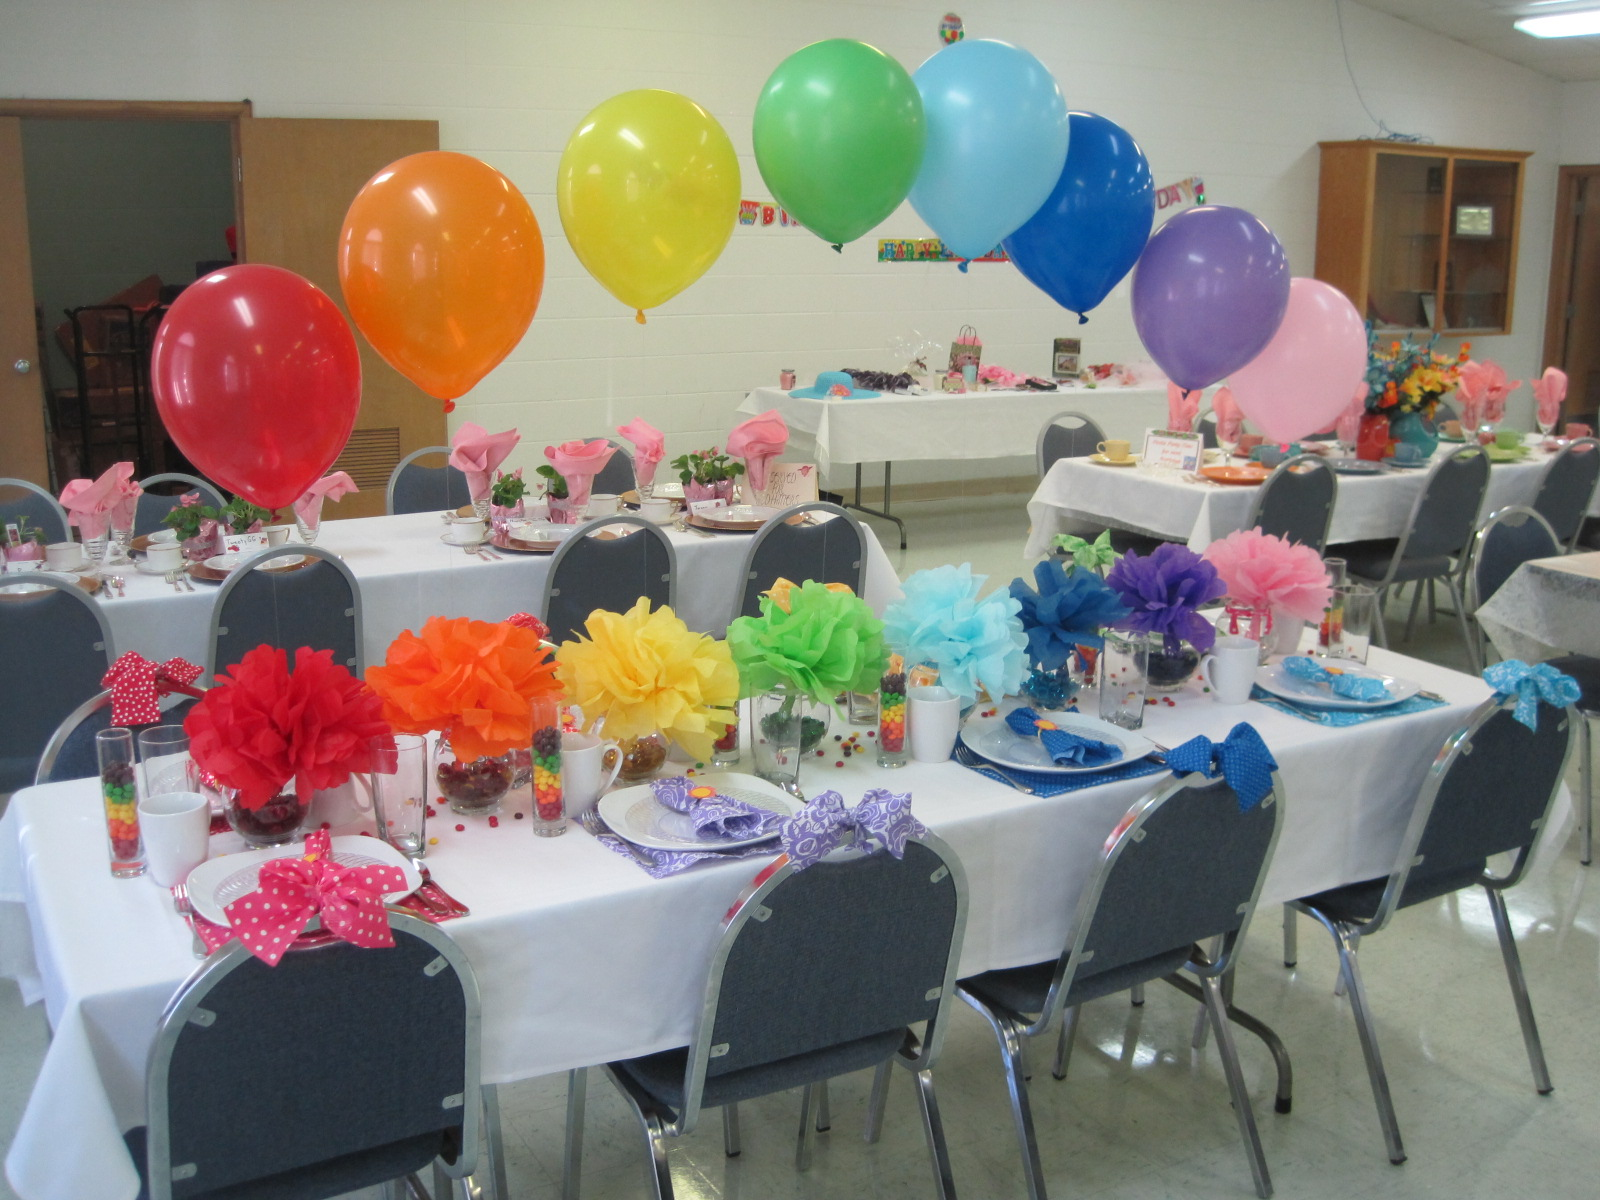 35 retirement party decorations ideas table decorating ideas for Decoration ideas